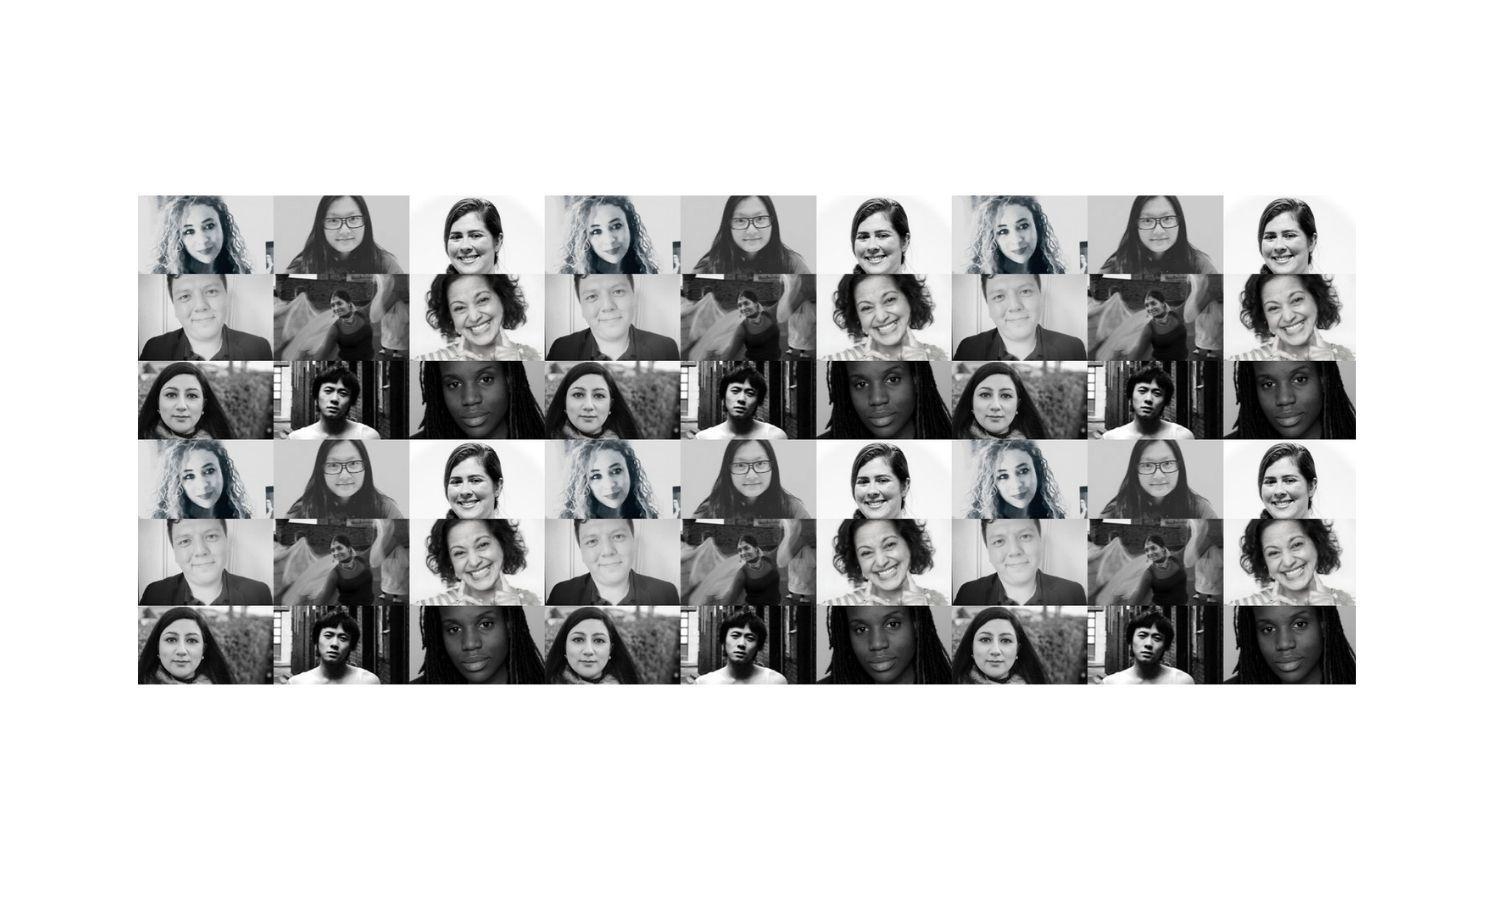 Black and white collage of portrait images of the fund awardees.